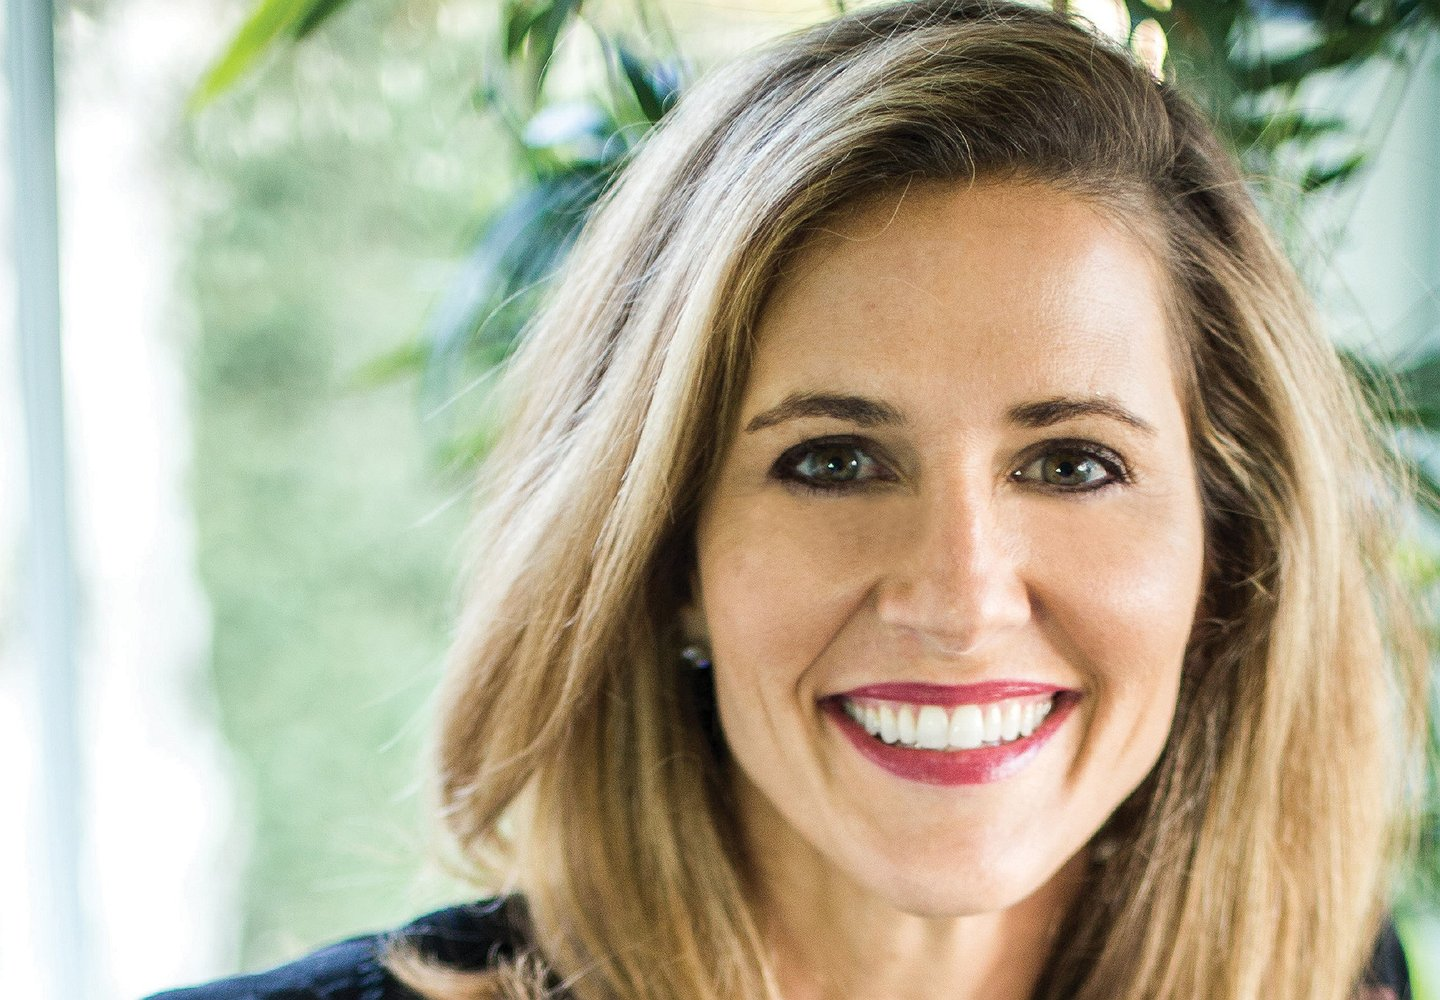 Alicia Hatch of Deloitte Digital to Speak at the Video Everywhere Summit